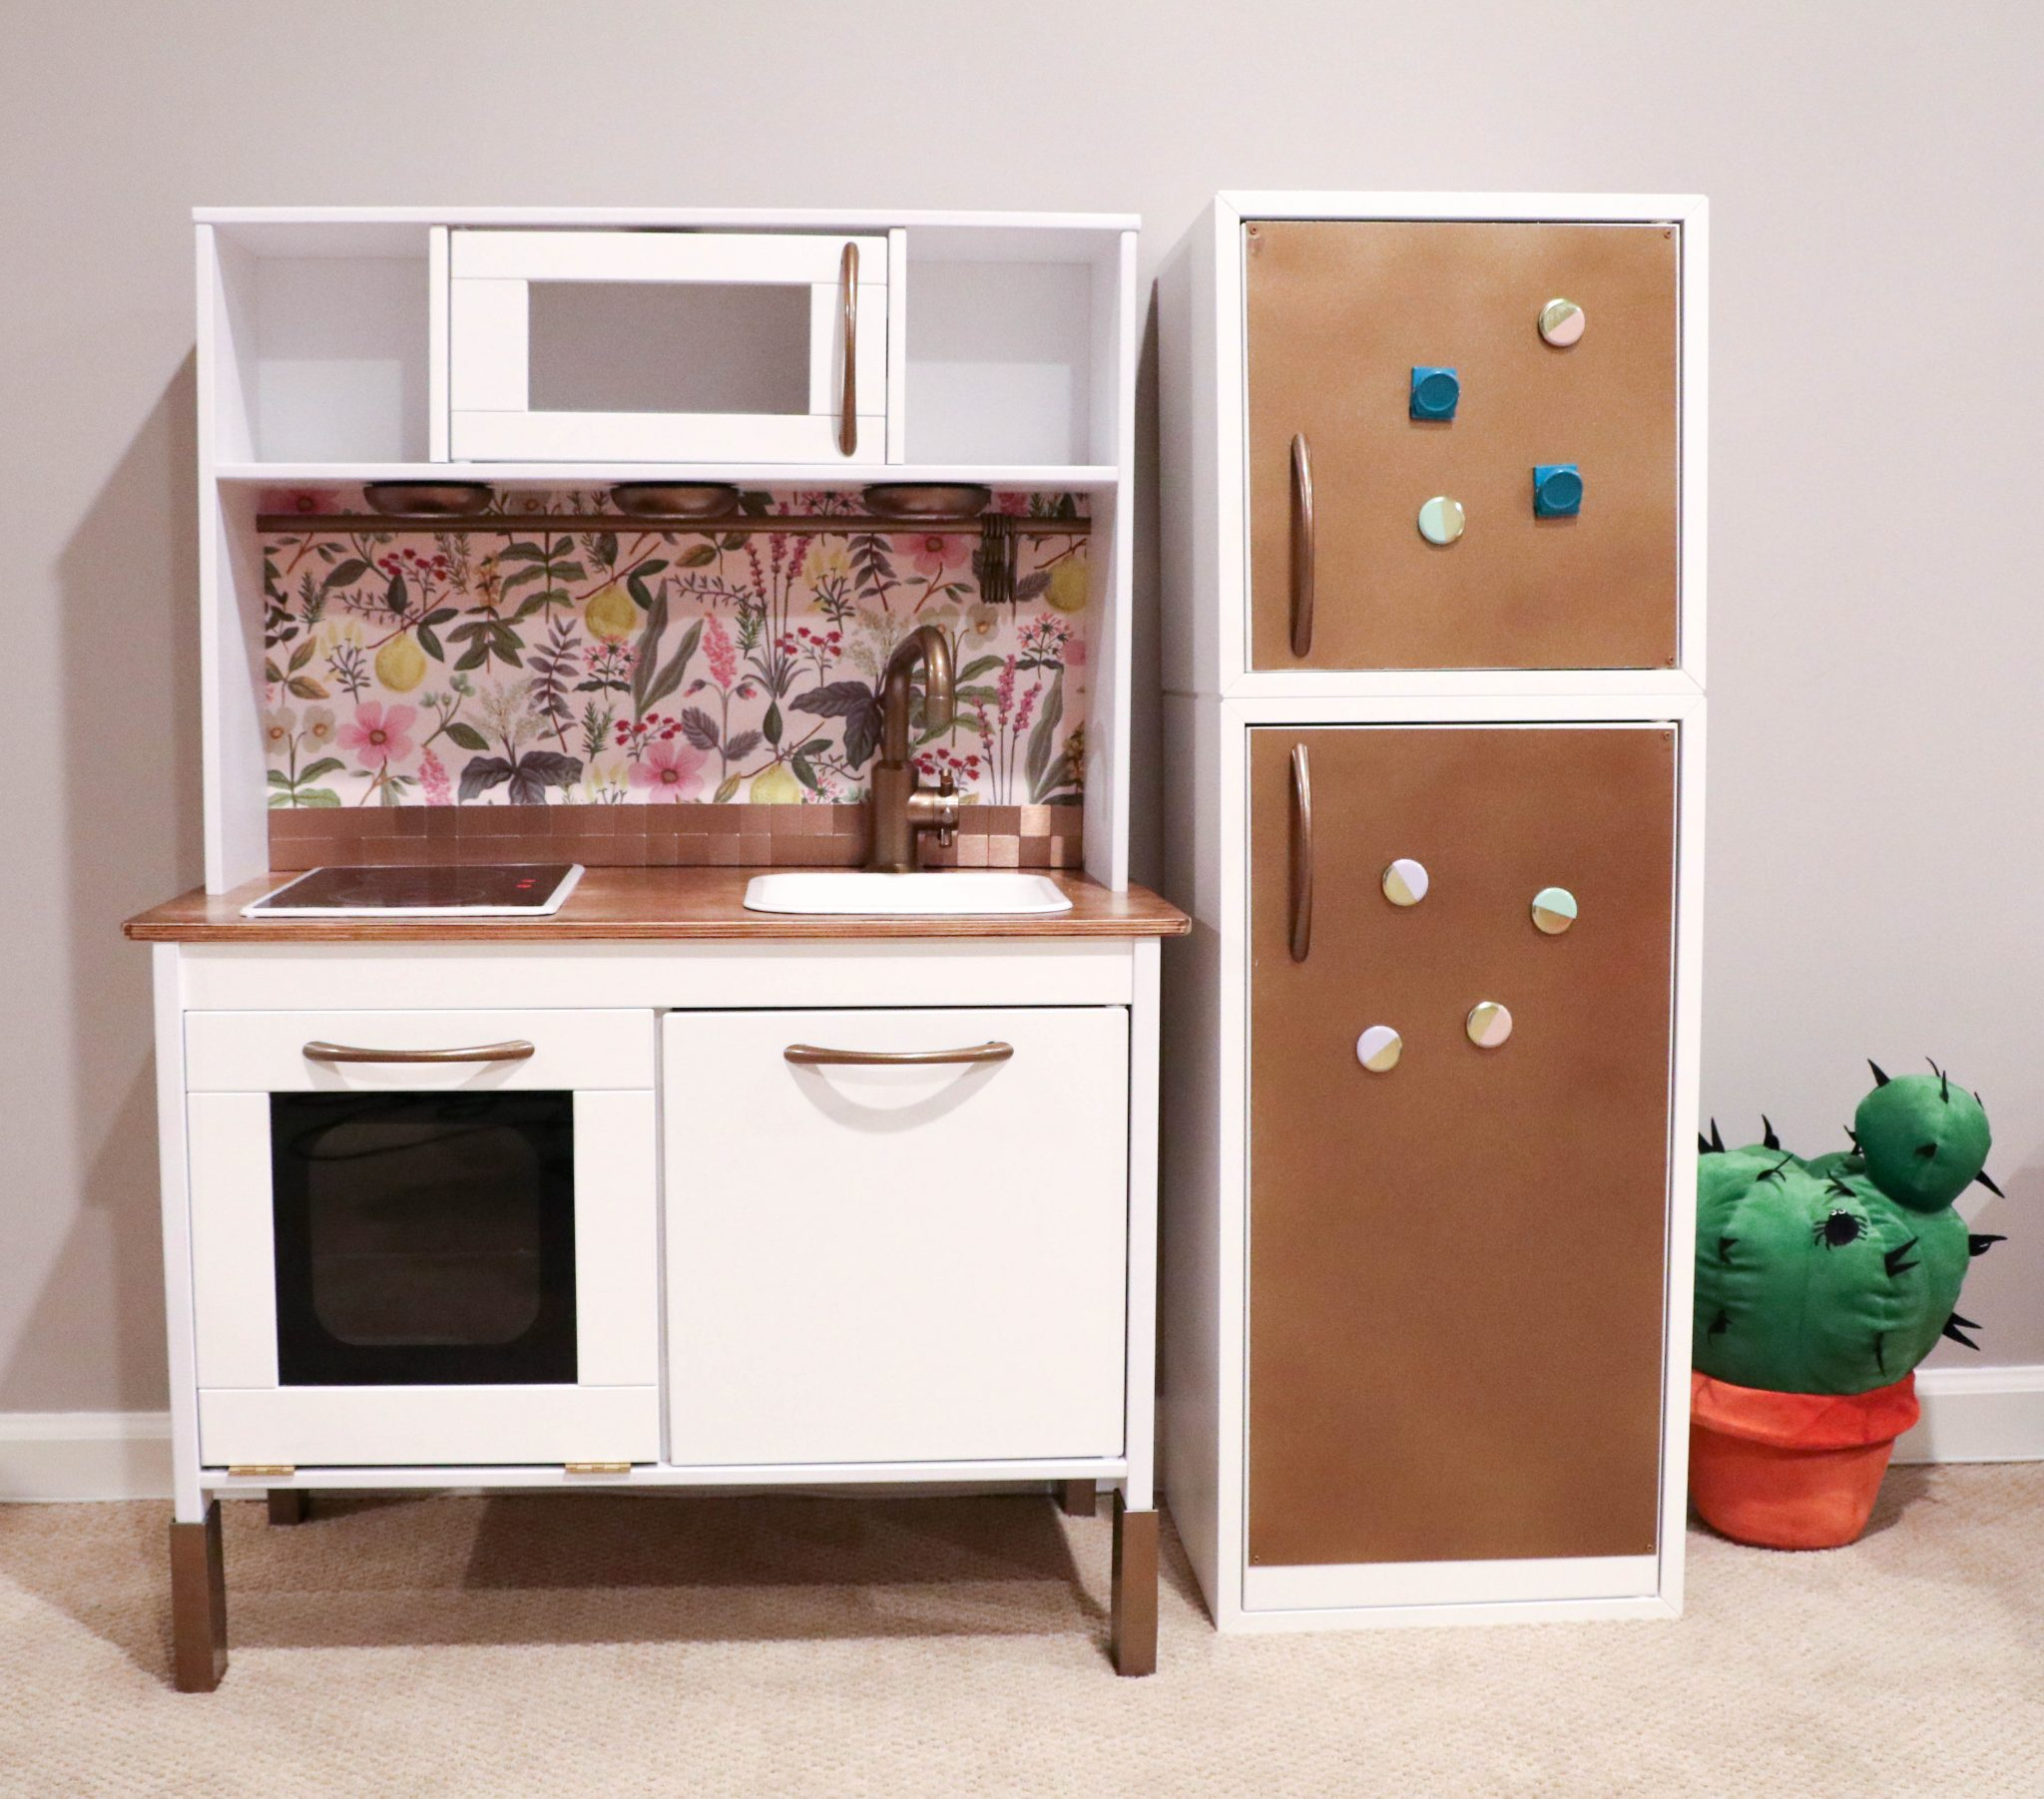 Ikea Kitchen Set: IKEA Hack: Building Your Child's Dream DUKTIG Play Kitchen